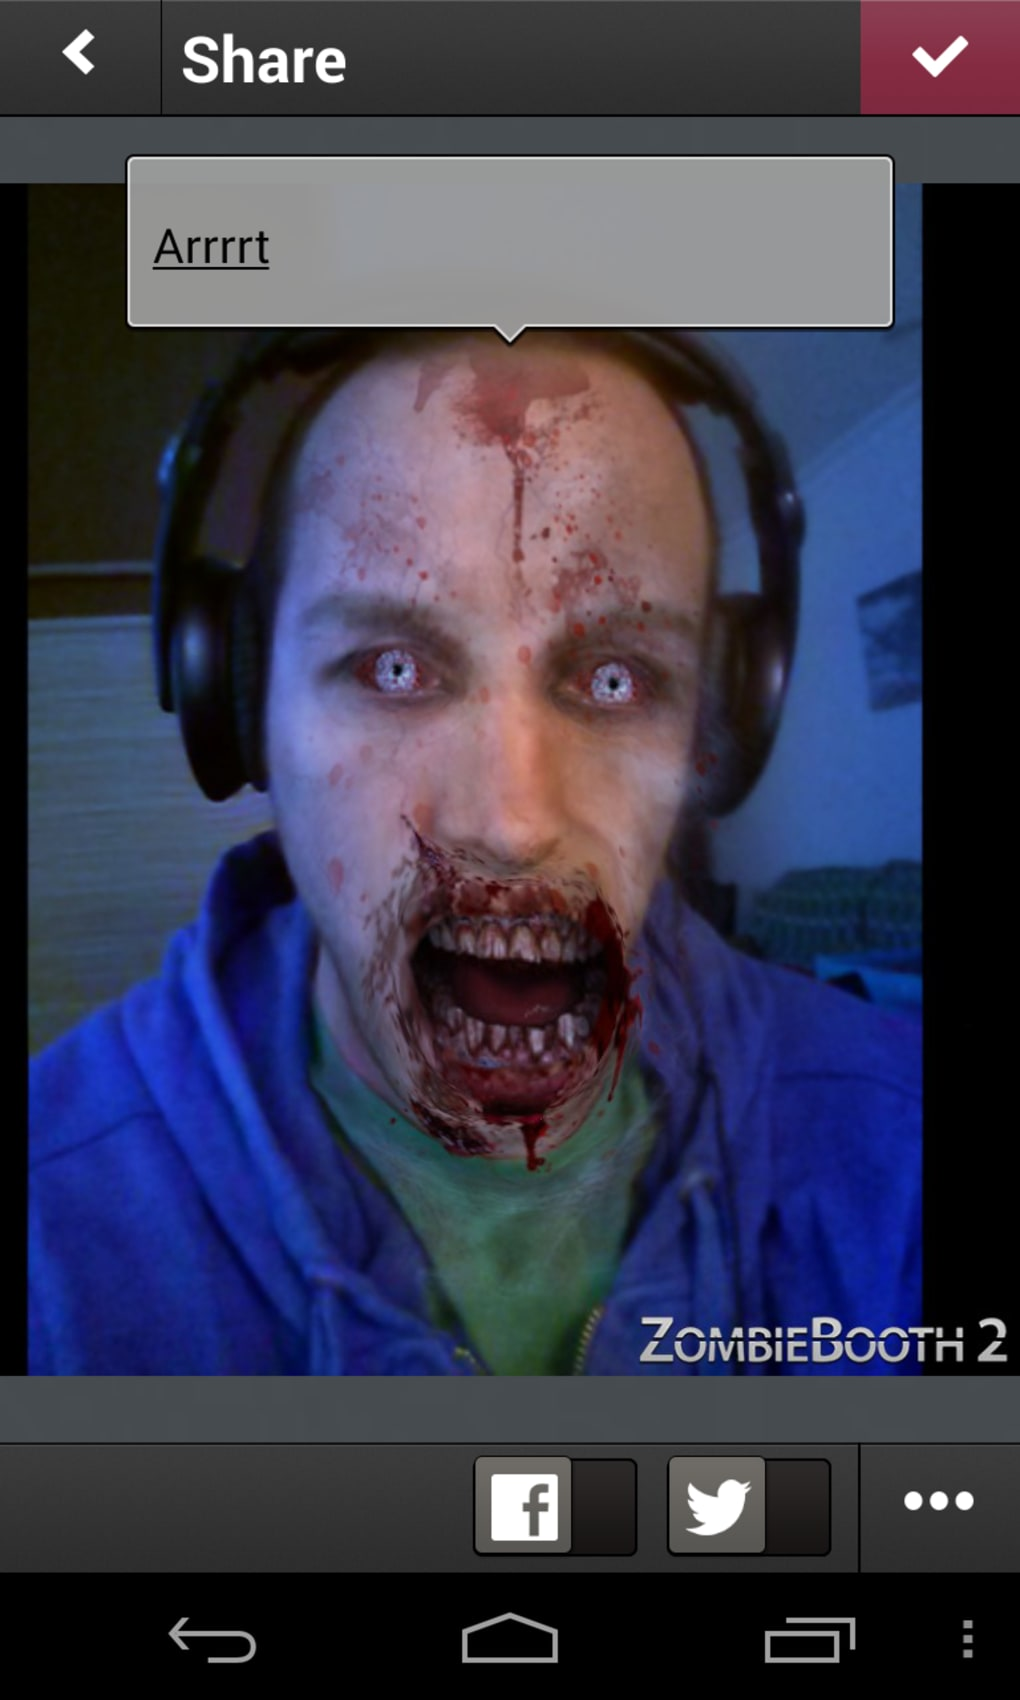 Zombiebooth app download.